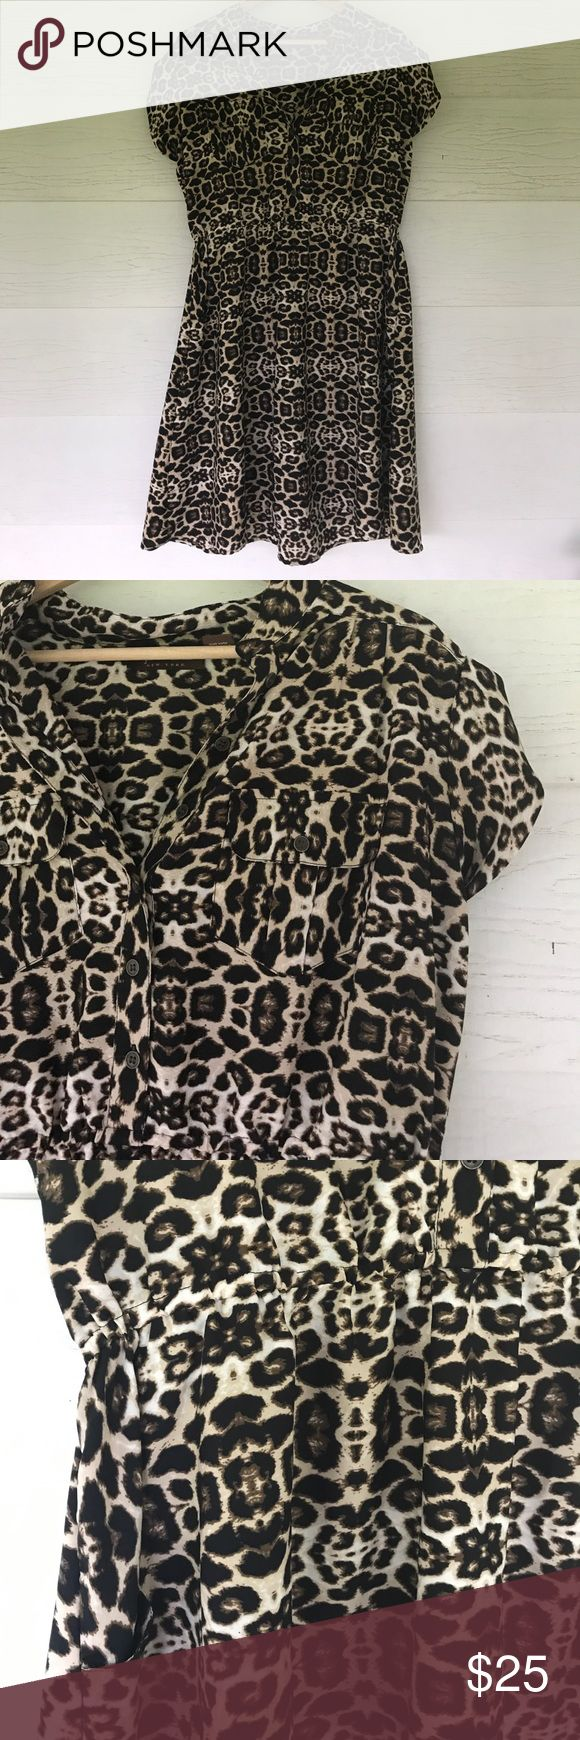 Animal print dress PLUS SIZE Size 1x. Animal print dress. Short cap sleeves. Pockets on front. Elastic waist. 22 bust 40 length. All measurements are approximate. Has cute little pockets speed central Dresses